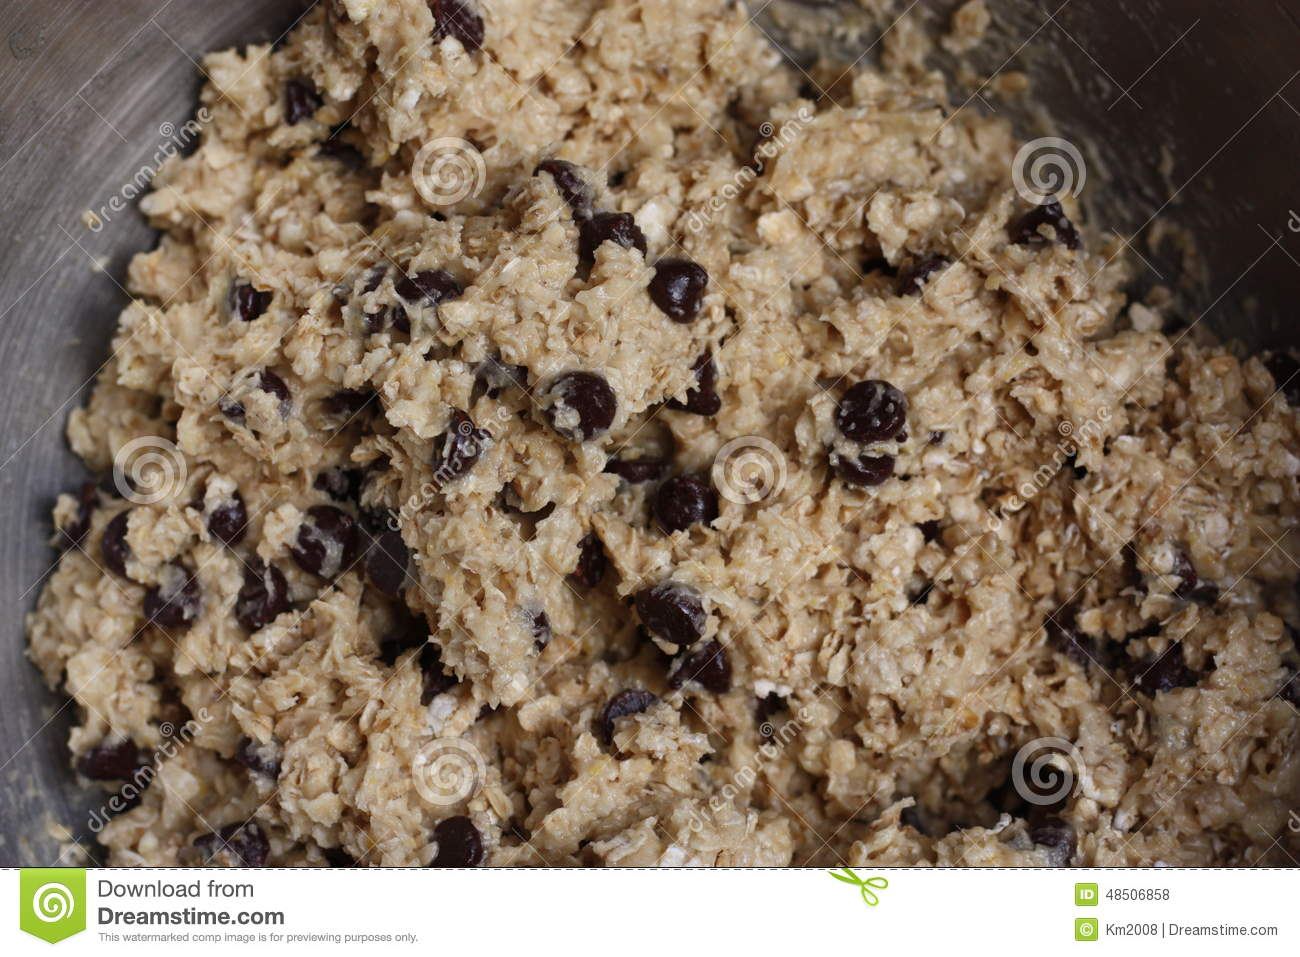 cookie nick malgieri s chewy oatmeal raisin cookie reese s oatmeal ...